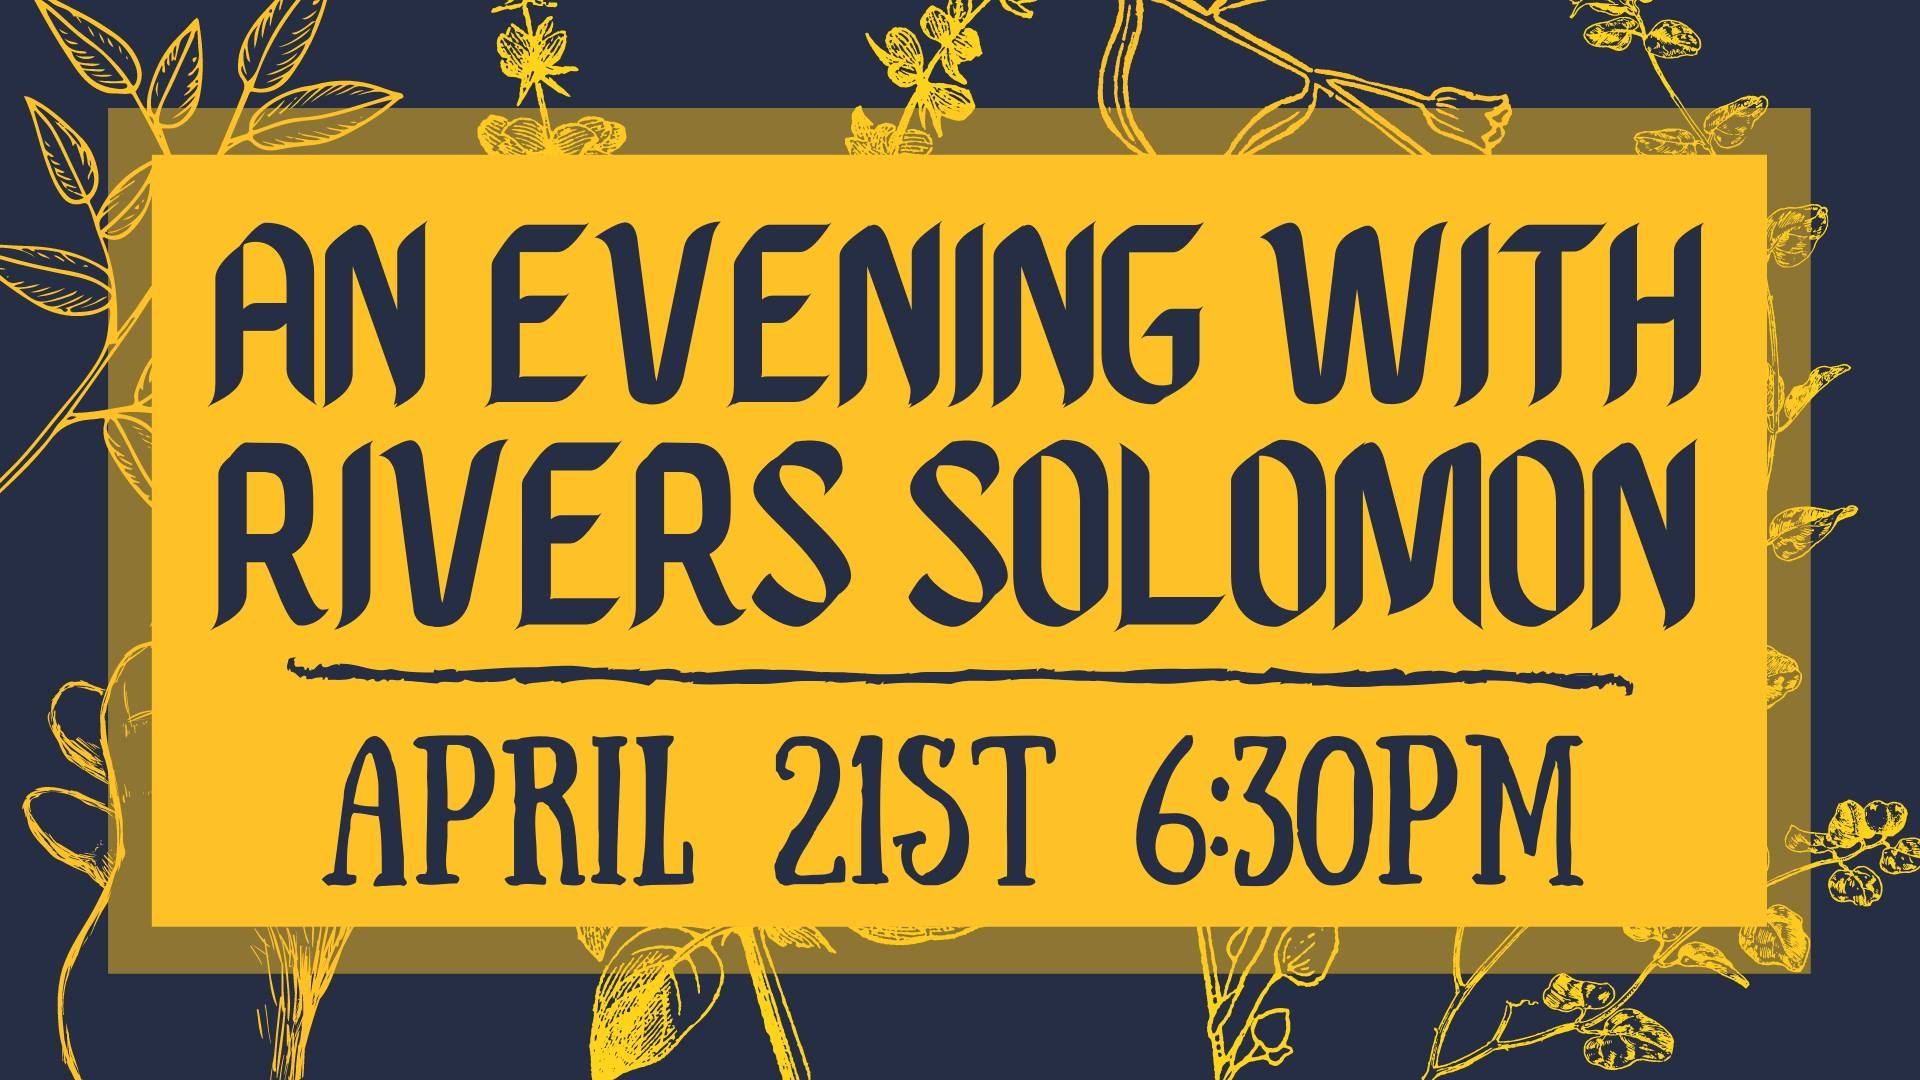 An Evening with Rivers Solomon